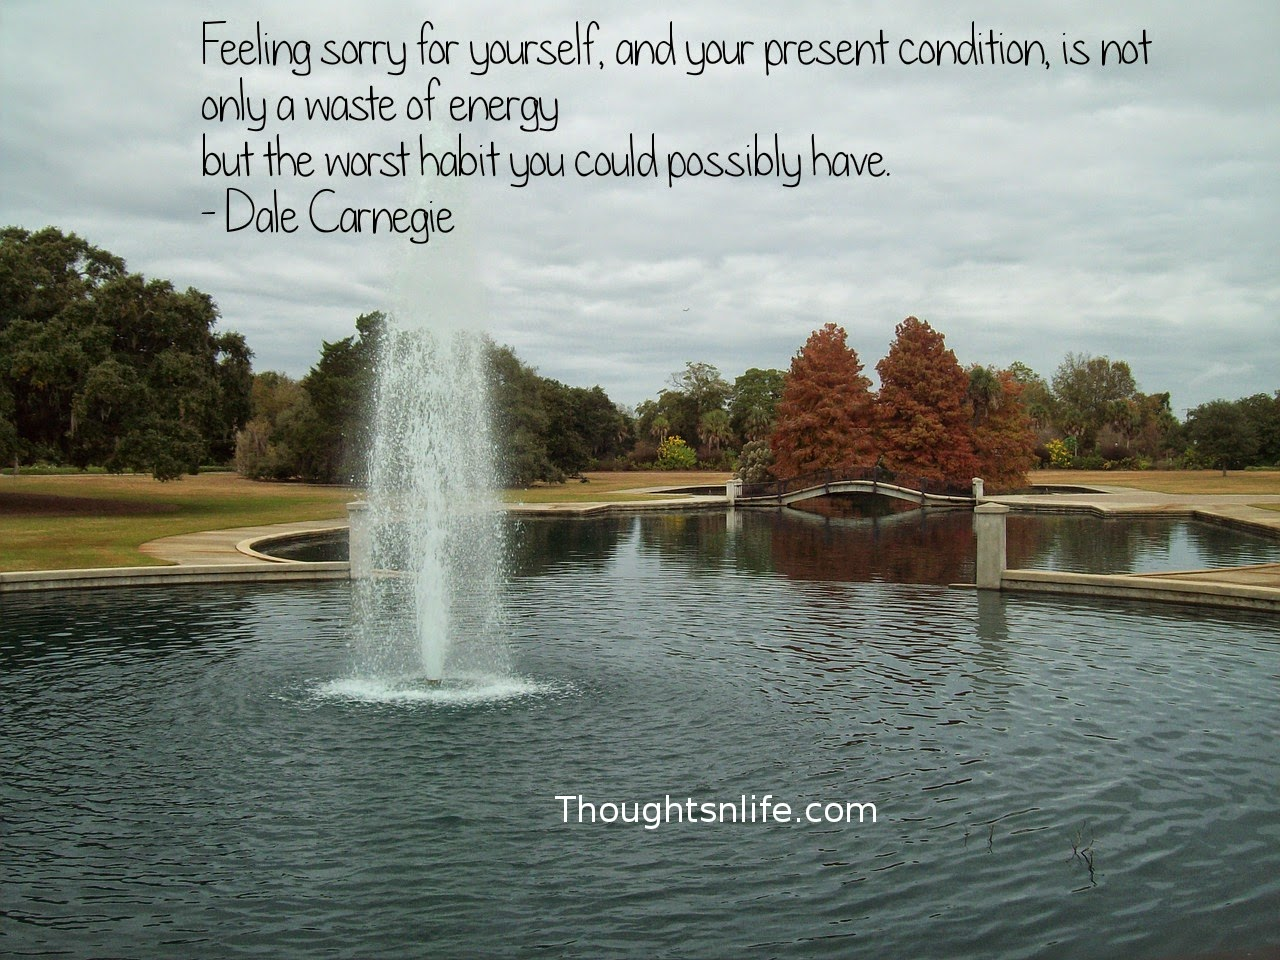 Thoughtsnlife.com: Feeling sorry for yourself, and your present condition, is not only a waste of energy but the worst habit you could possibly have. - Dale Carnegie